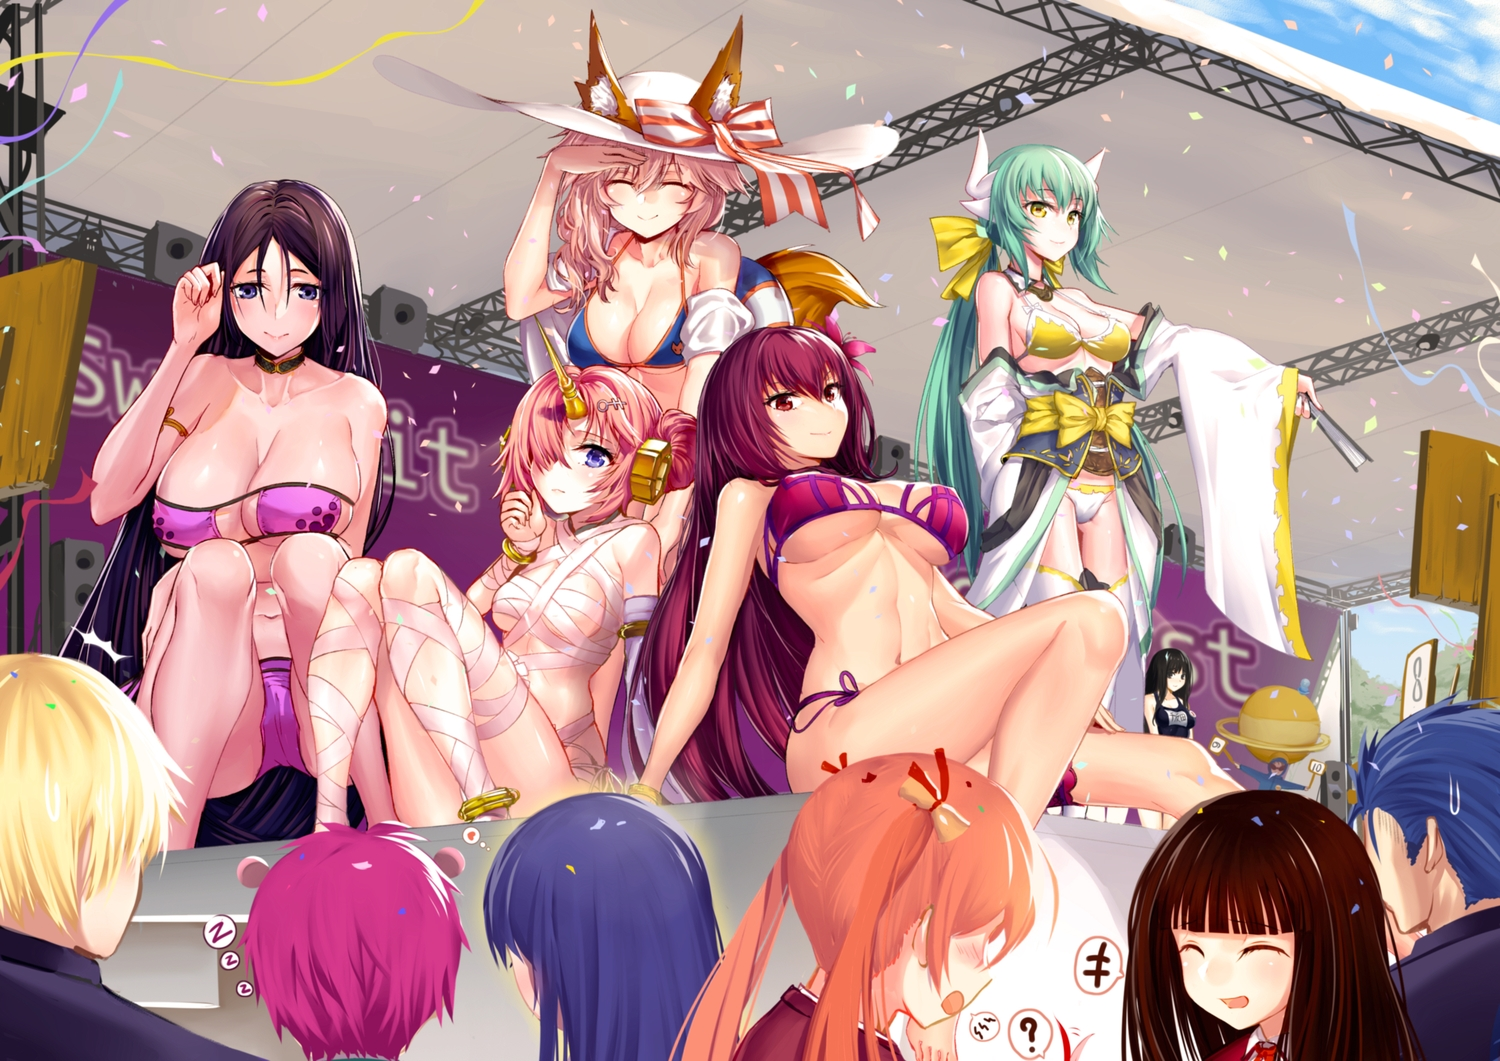 animal_ears bikini blue_eyes bow breasts cleavage fan fate/grand_order fate_(series) frankenstein green_eyes green_hair group hat horns kiyohime_(fate/grand_order) long_hair male minamoto_no_yorimitsu_(fate) navel onceskylark pink_hair ponytail red_eyes red_hair ribbons saiki saiki_kusuo_no_psi_nan scathach_(fate/grand_order) swimsuit tagme_(character) tail tamamo_no_mae_(fate) teruhashi_kokomi thighhighs